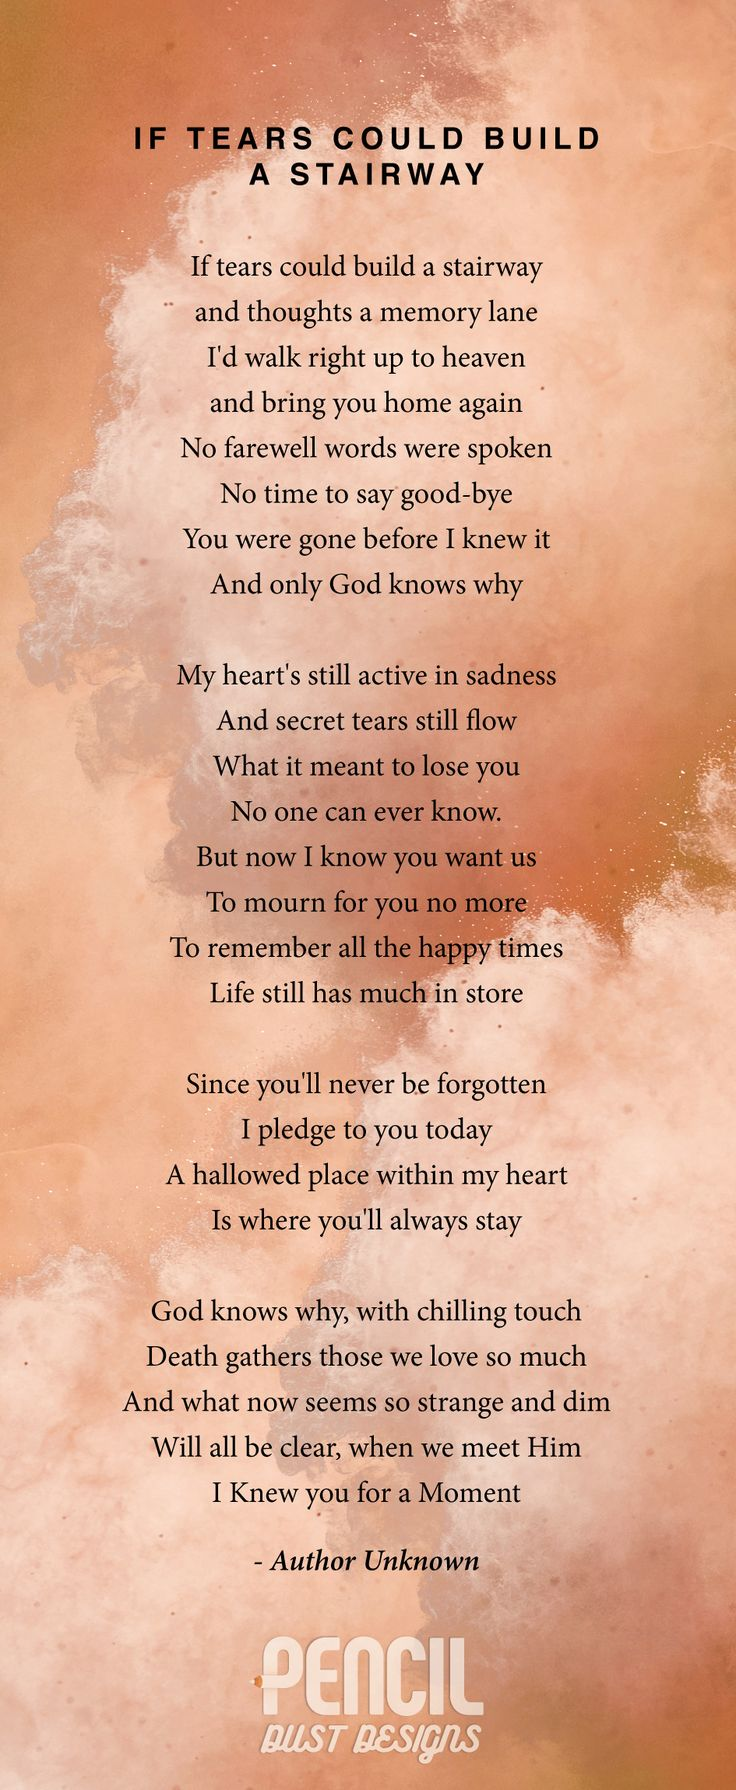 help writing a poem for funeral